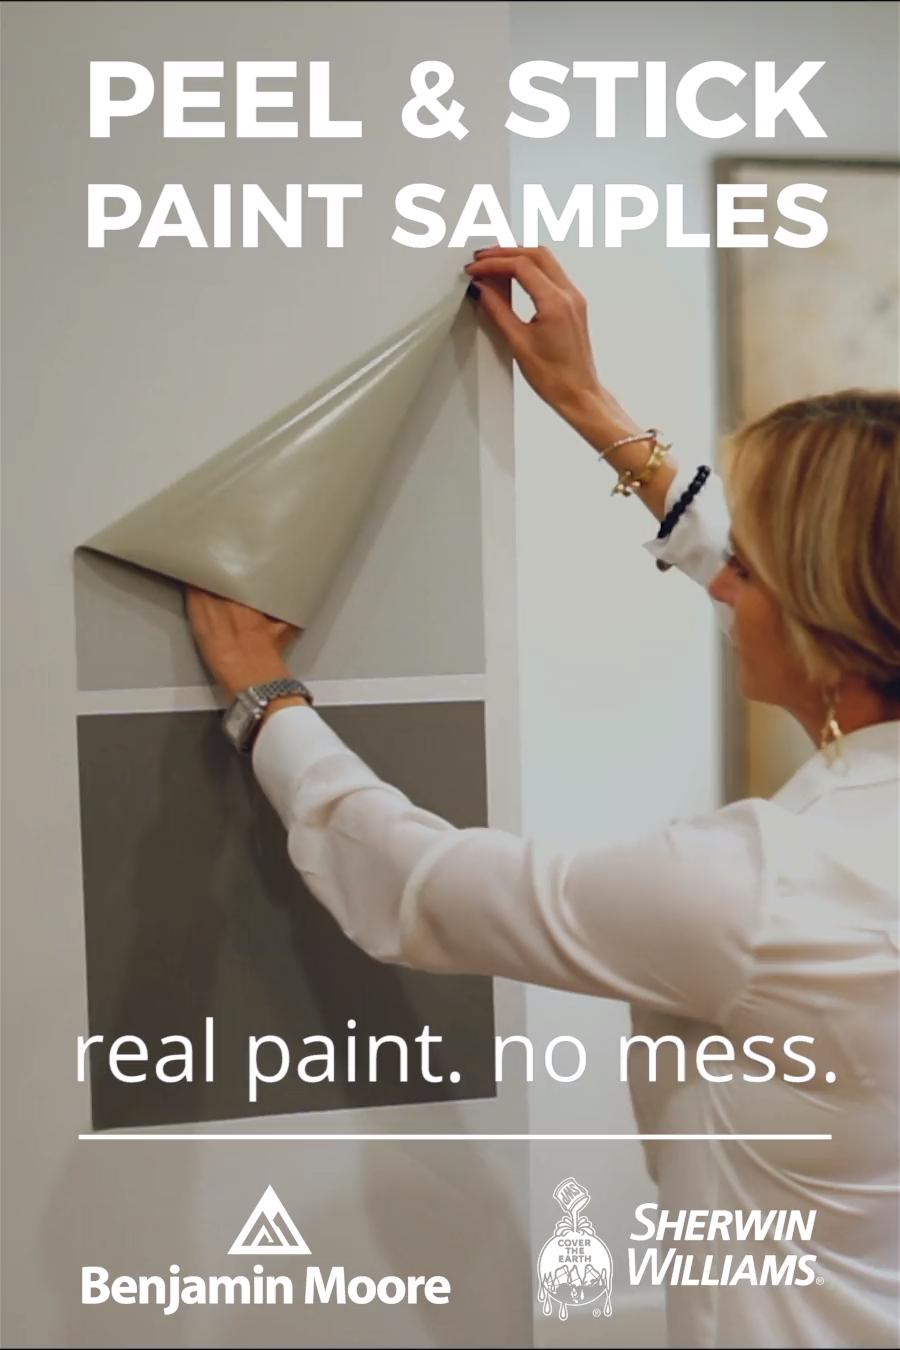 Samplize   Making Samples Simpler is part of Paint samples - View real paint without the mess  Peel & stick paint samples made with real paint and shipped within 24 hours  Large 12 x12  size and repositionable adhesive backing  Available in lines from Sherwin Williams, Benjamin Moore, and Farrow & Ball  Meet the modern paint swatch